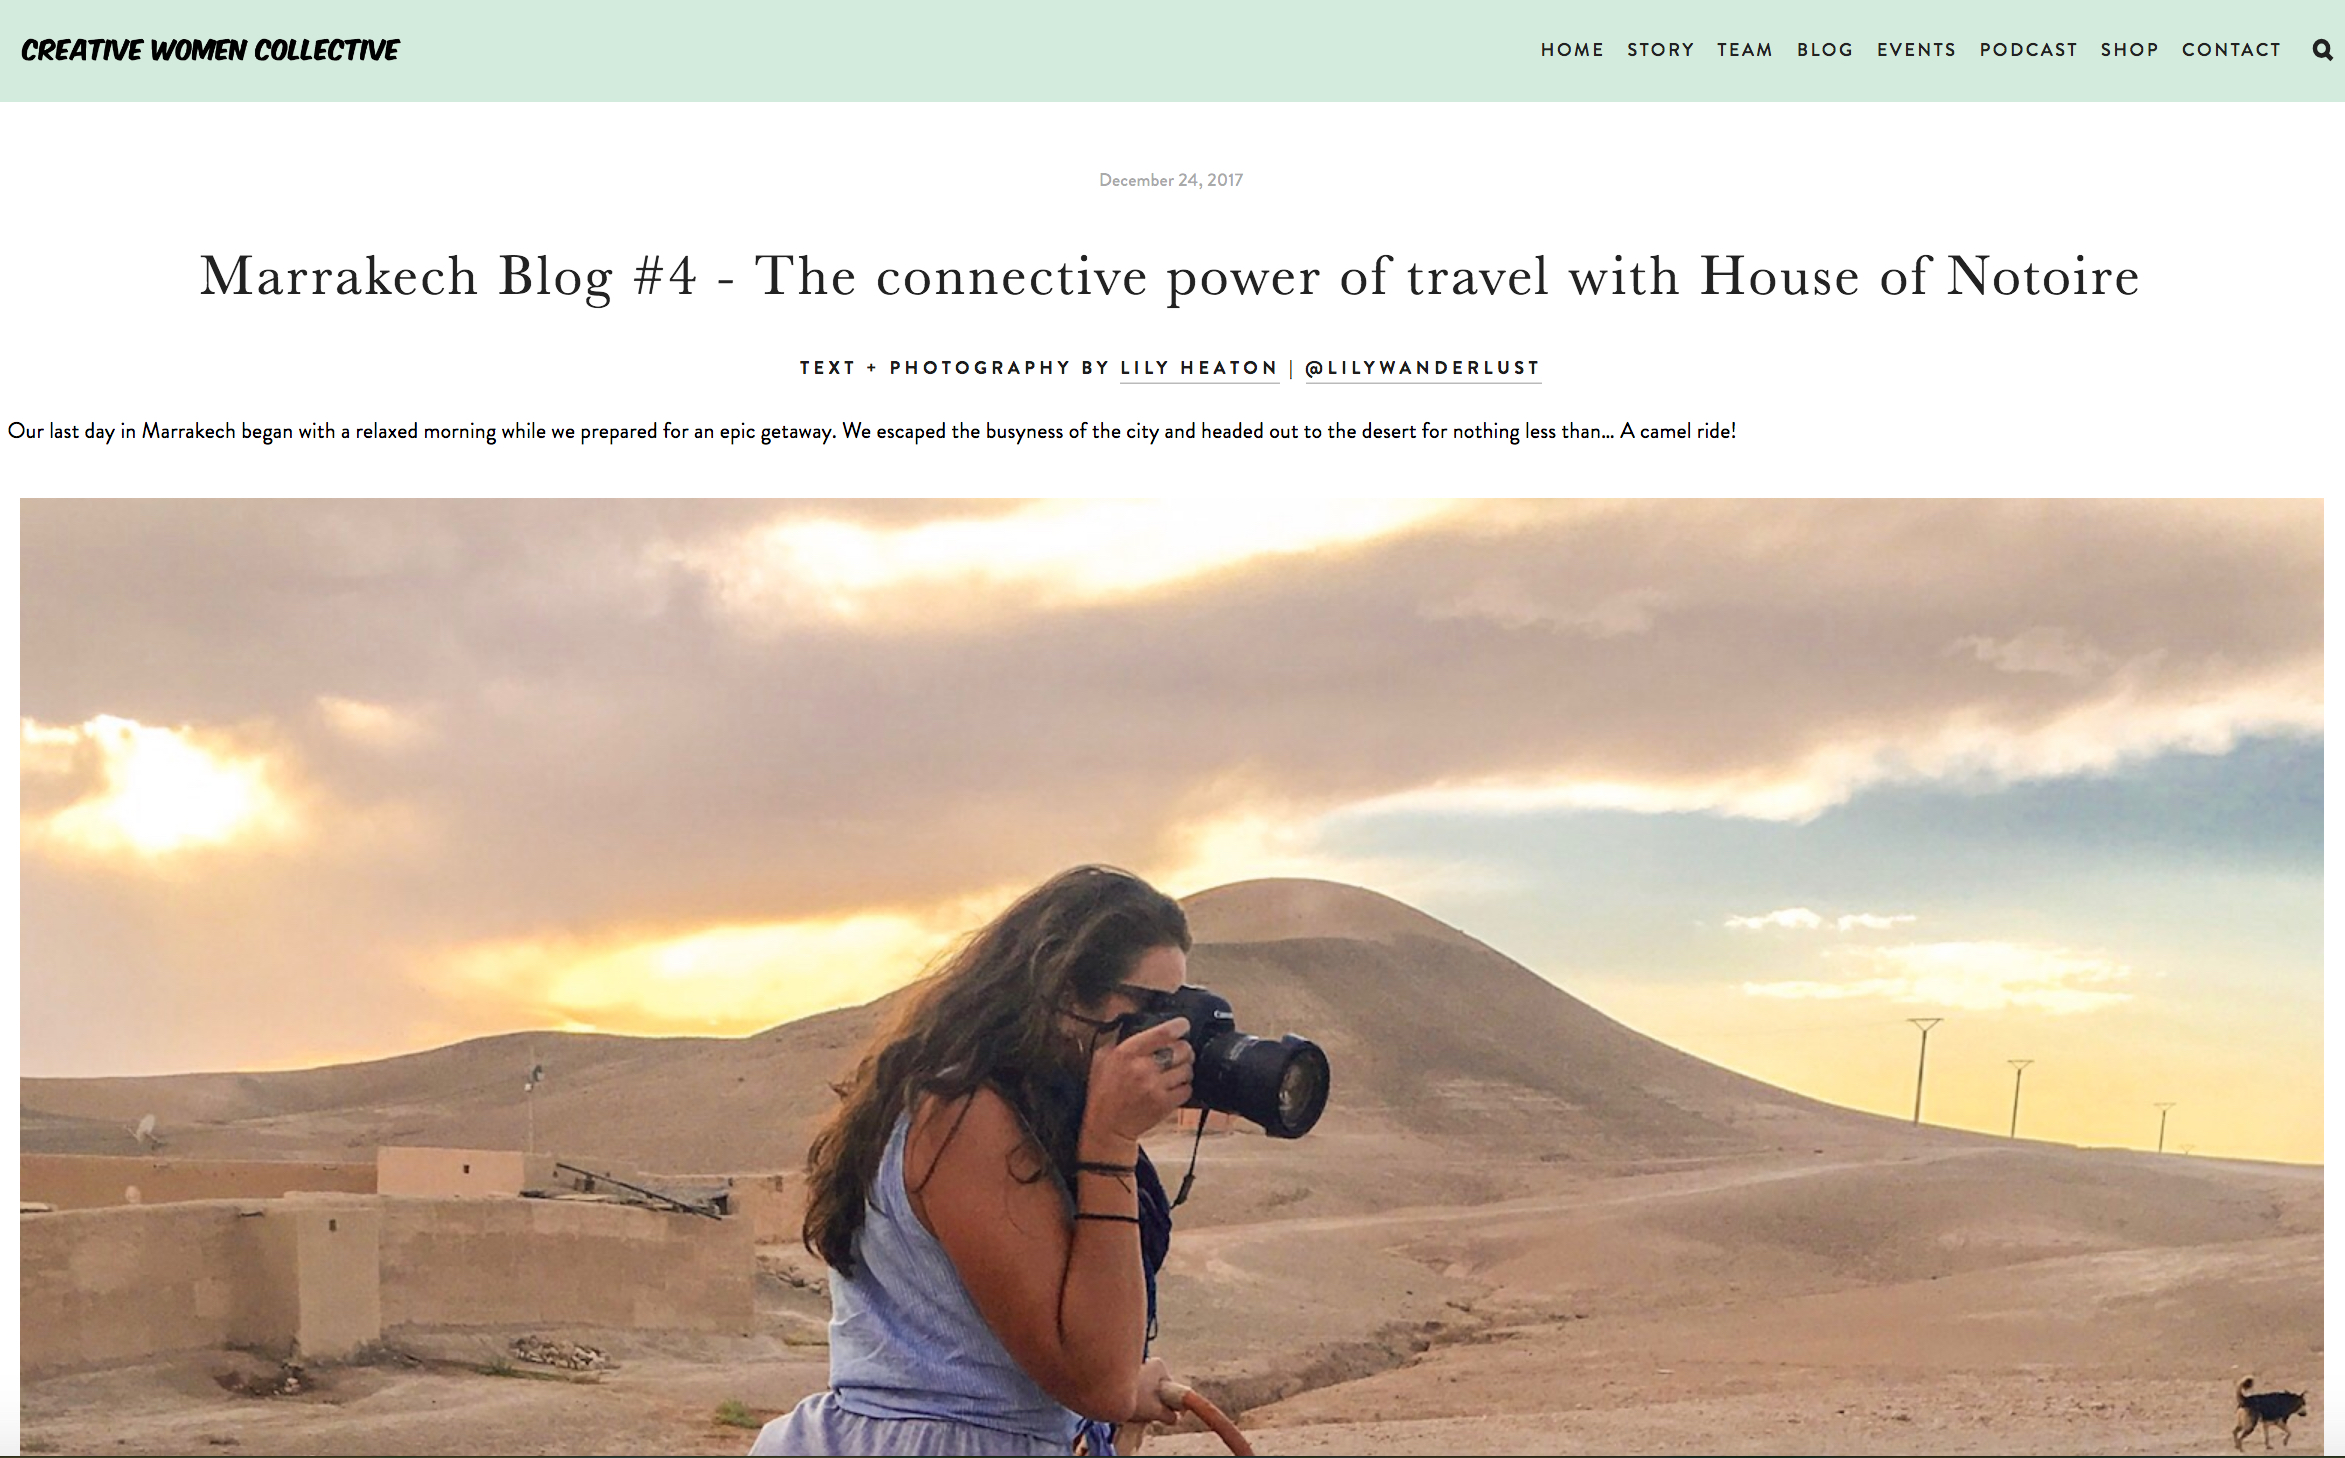 CWC Blog - Marrakech with House of Notoire